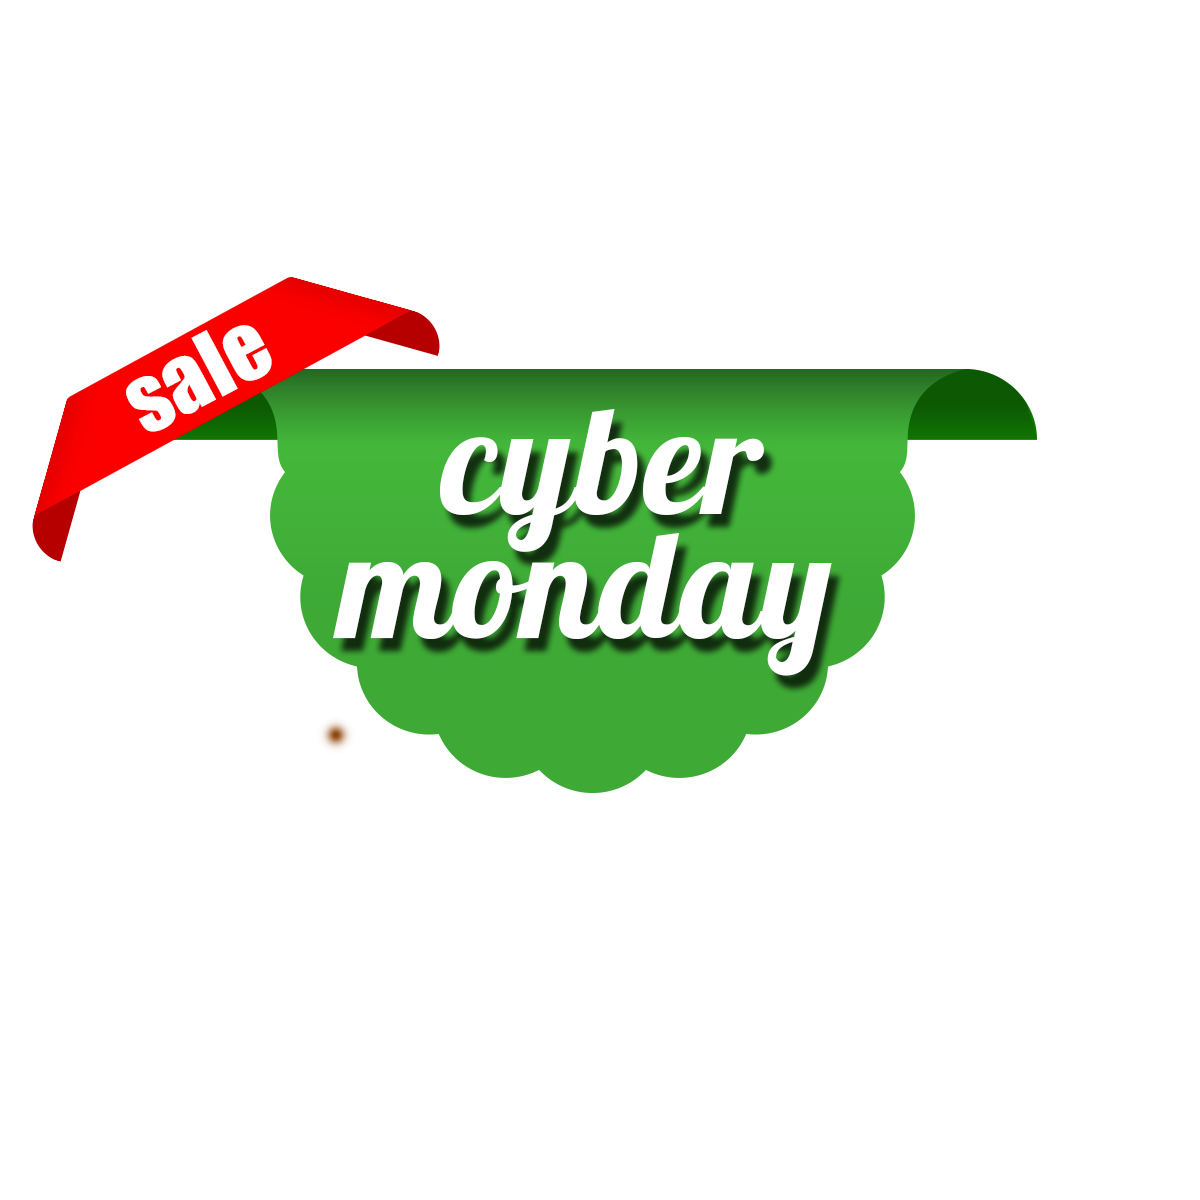 Free download high quality cyber monday png ribbon